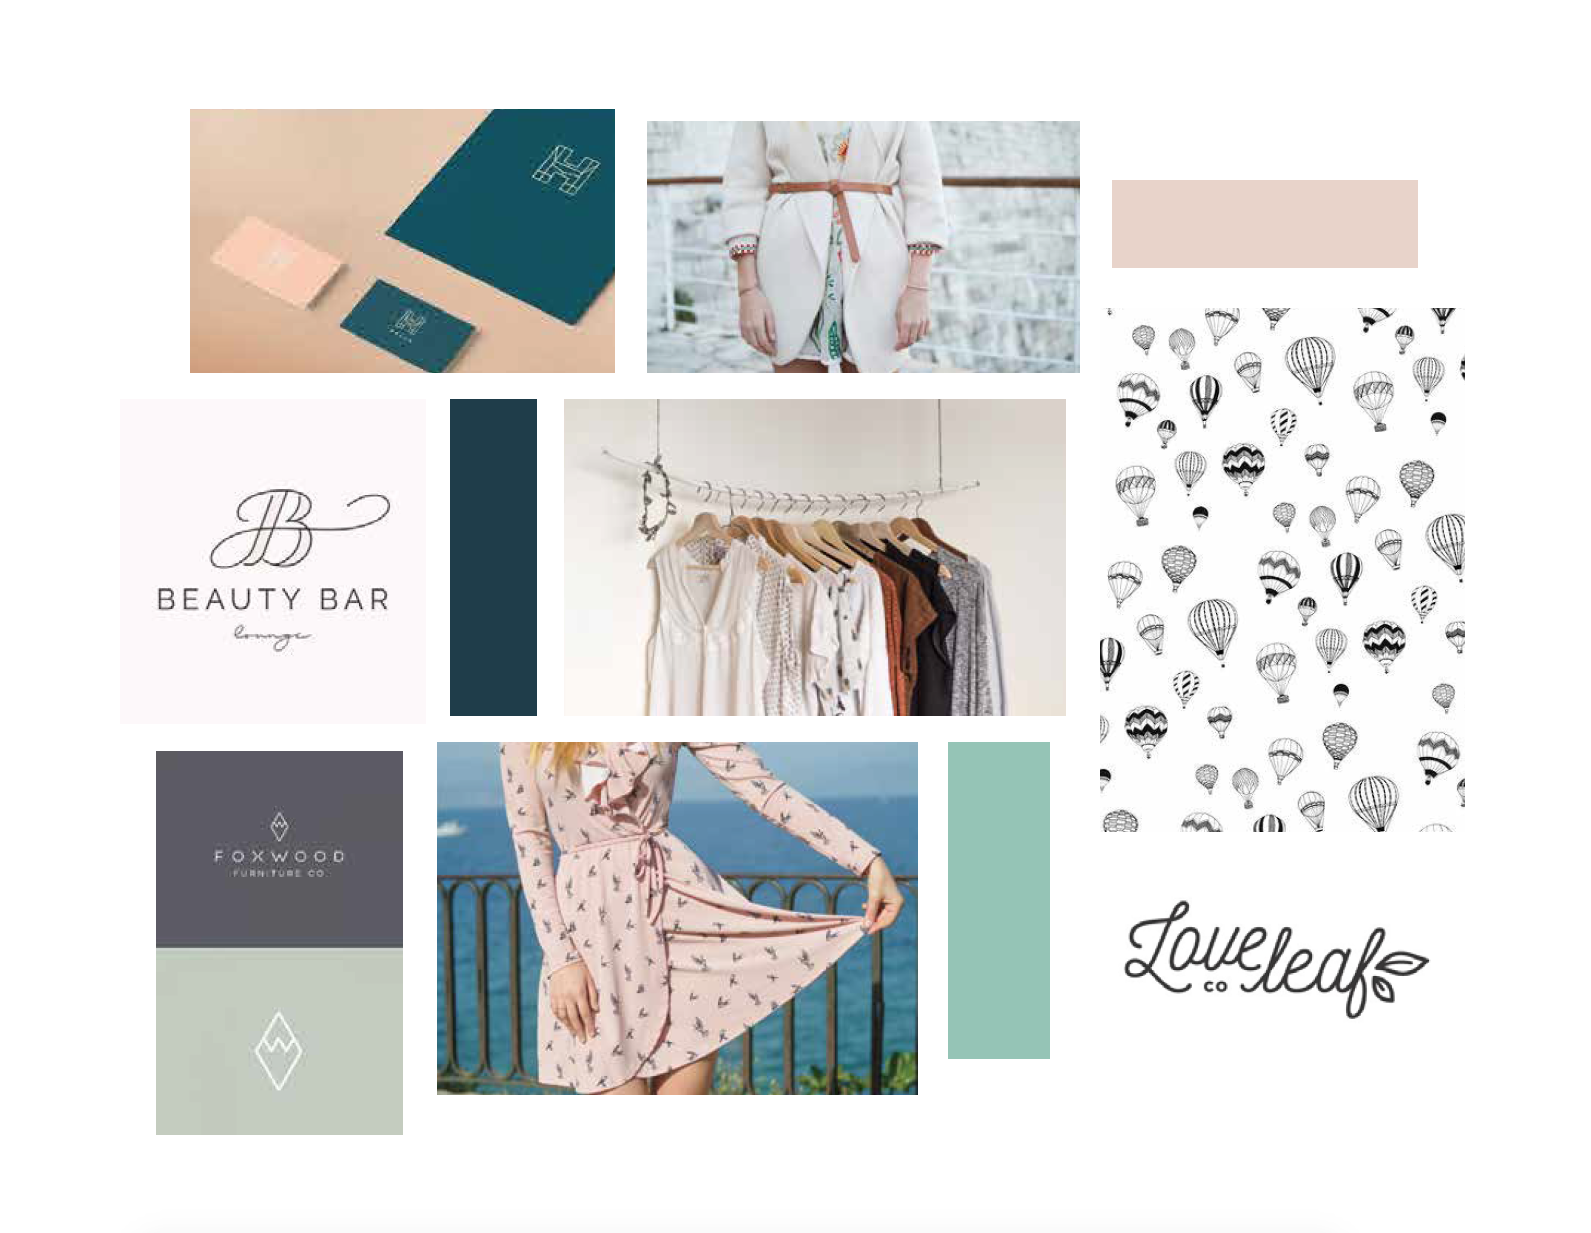 hayley bigham designs-tulsa graphic designer-Horizon boutique-feminine online clothing-moodboard-logo design